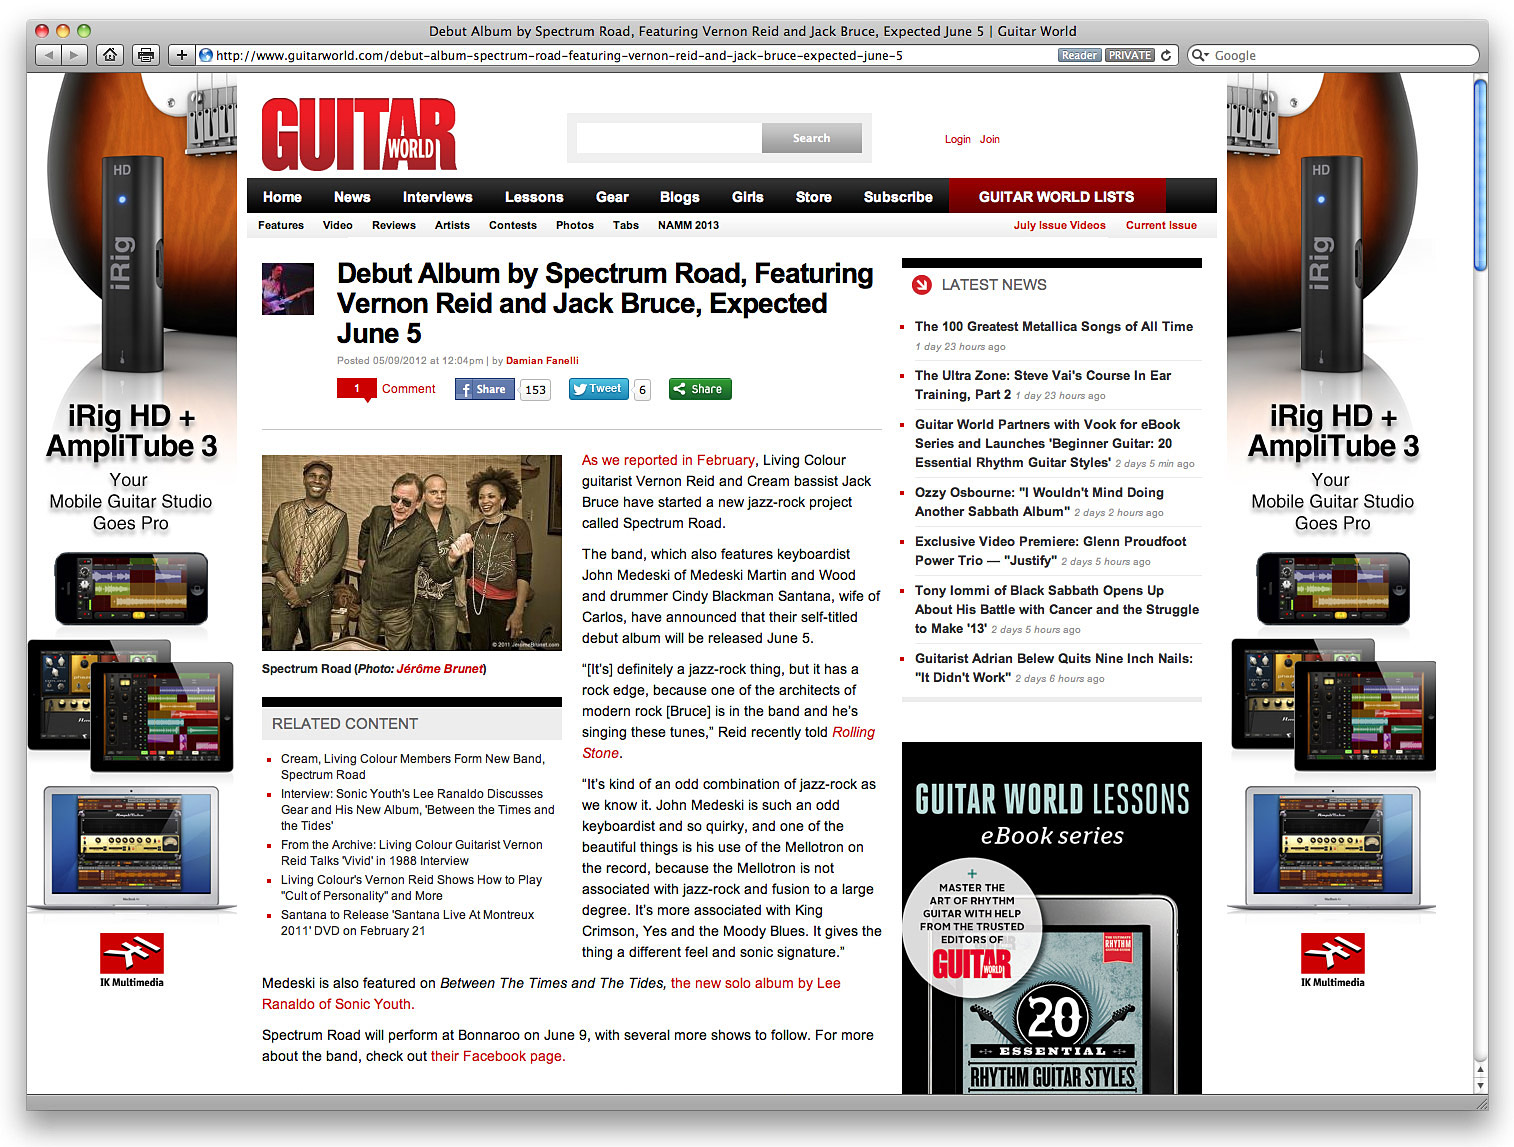 Guitar_World_Magazine_2012_2